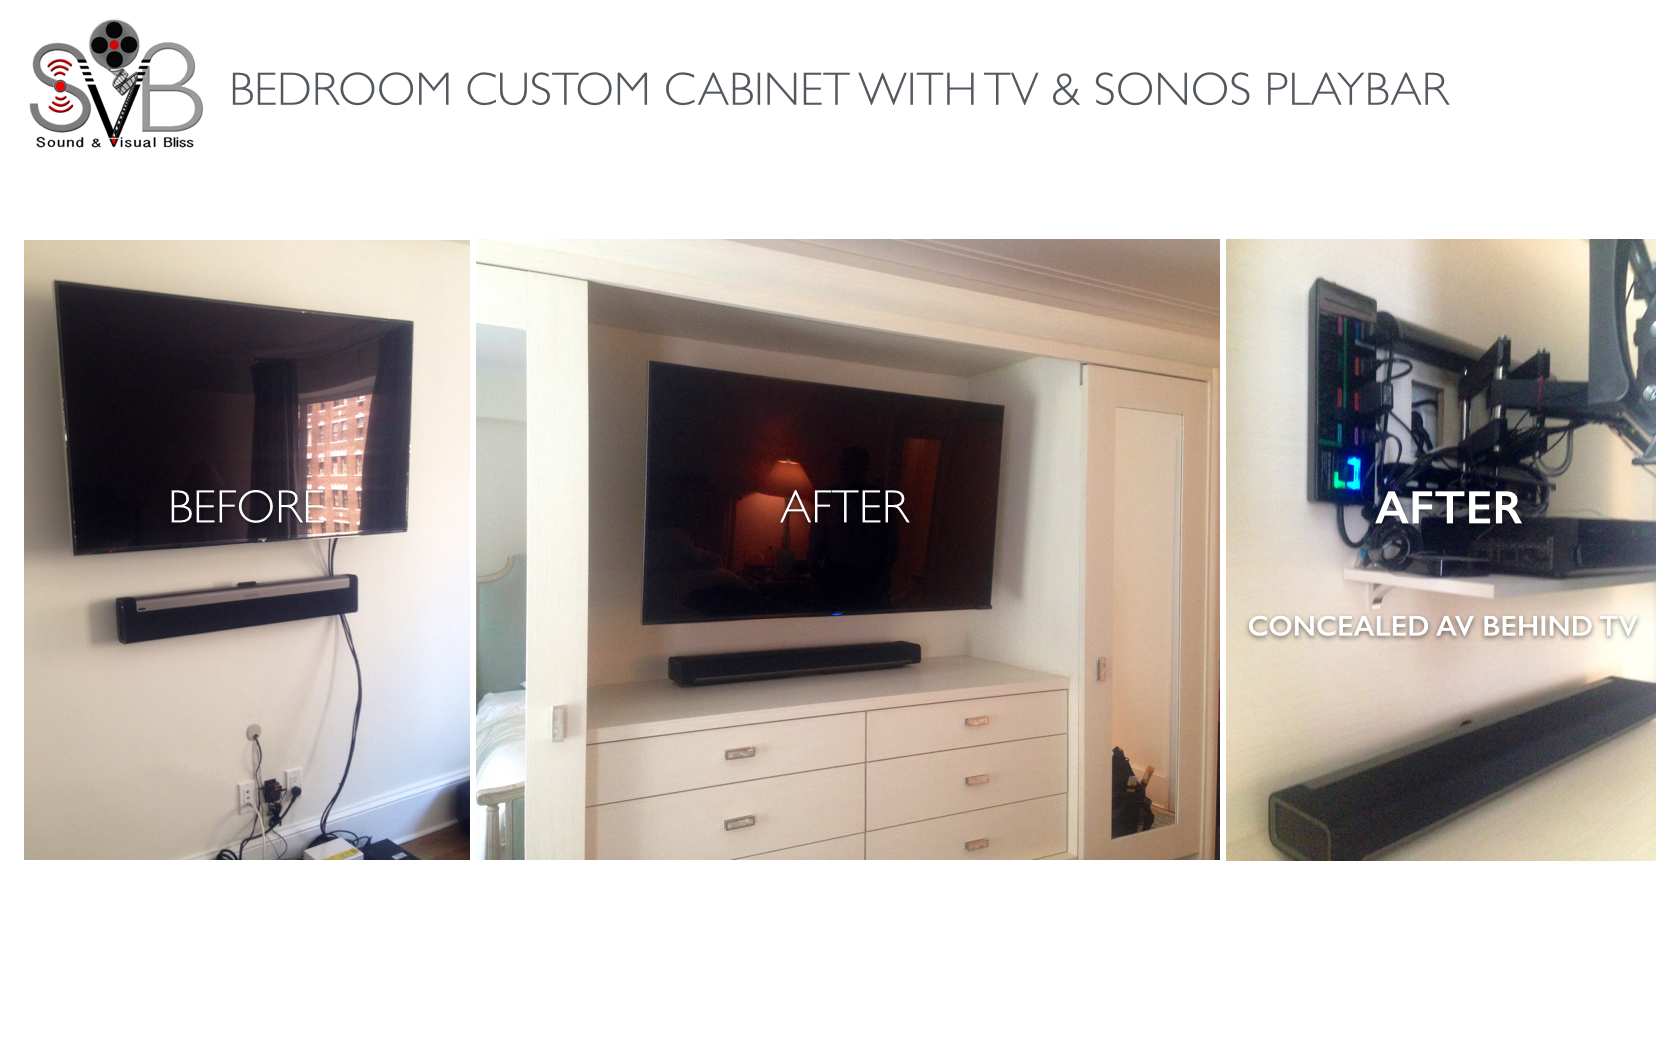 BEDROOM CUSTOM CABINET